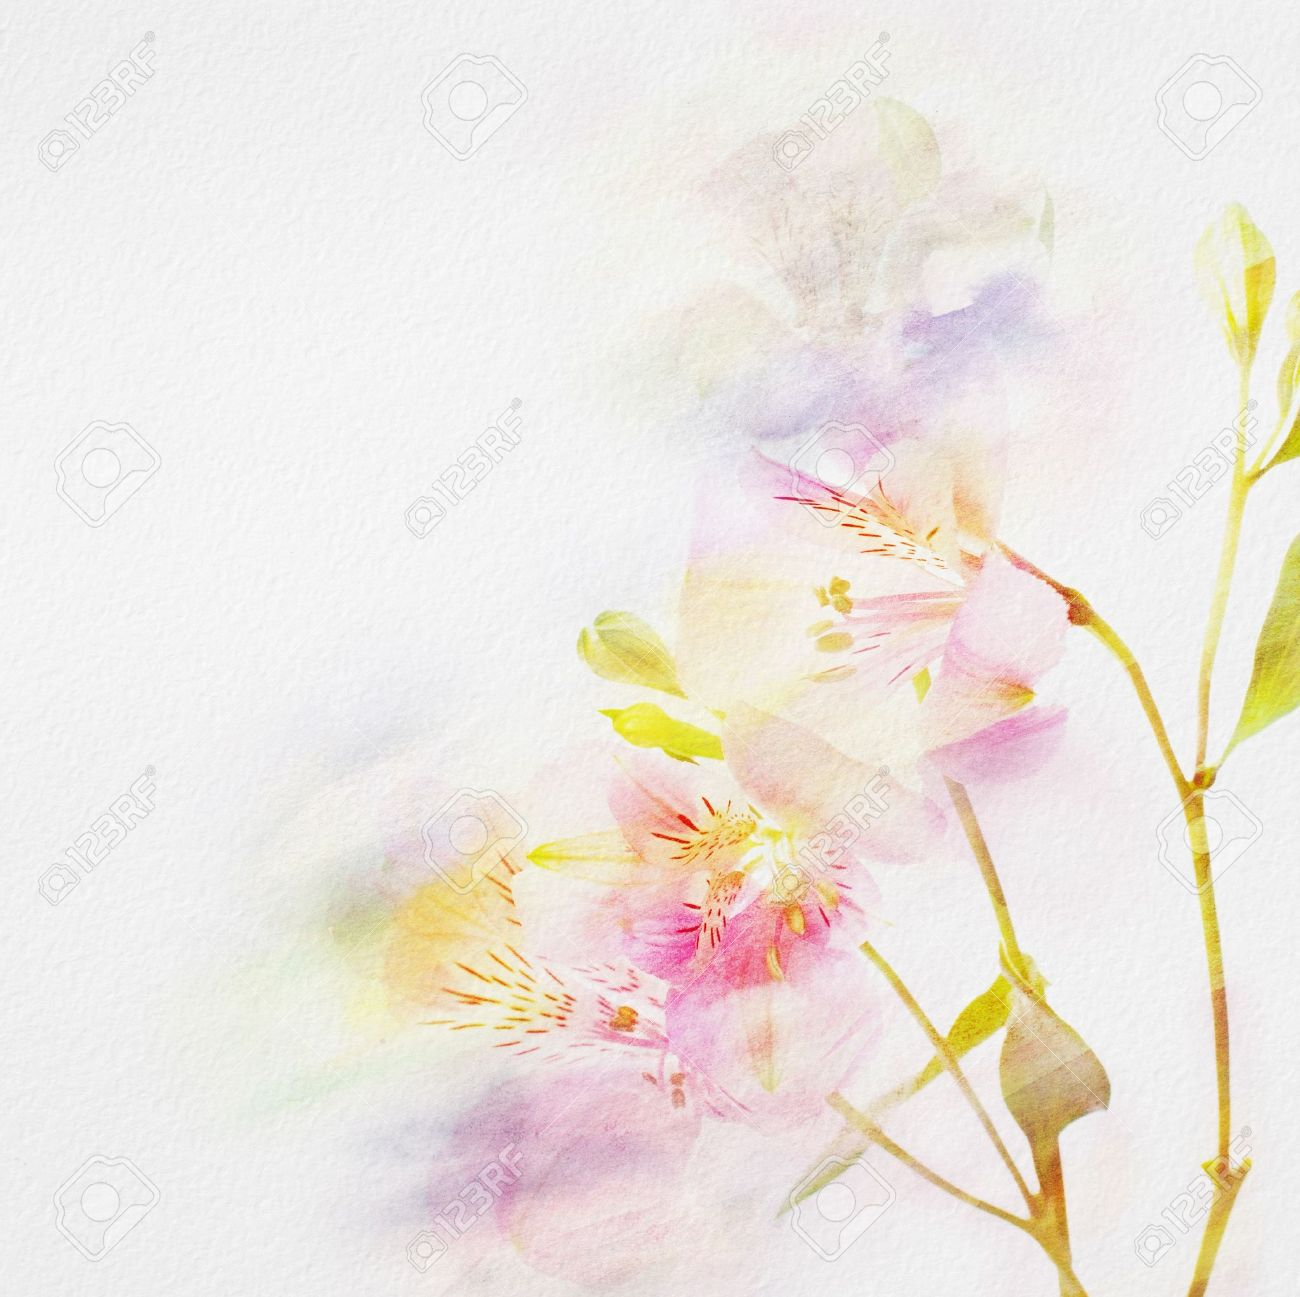 Floral Background With Watercolor Flowers Stock Photo Picture And